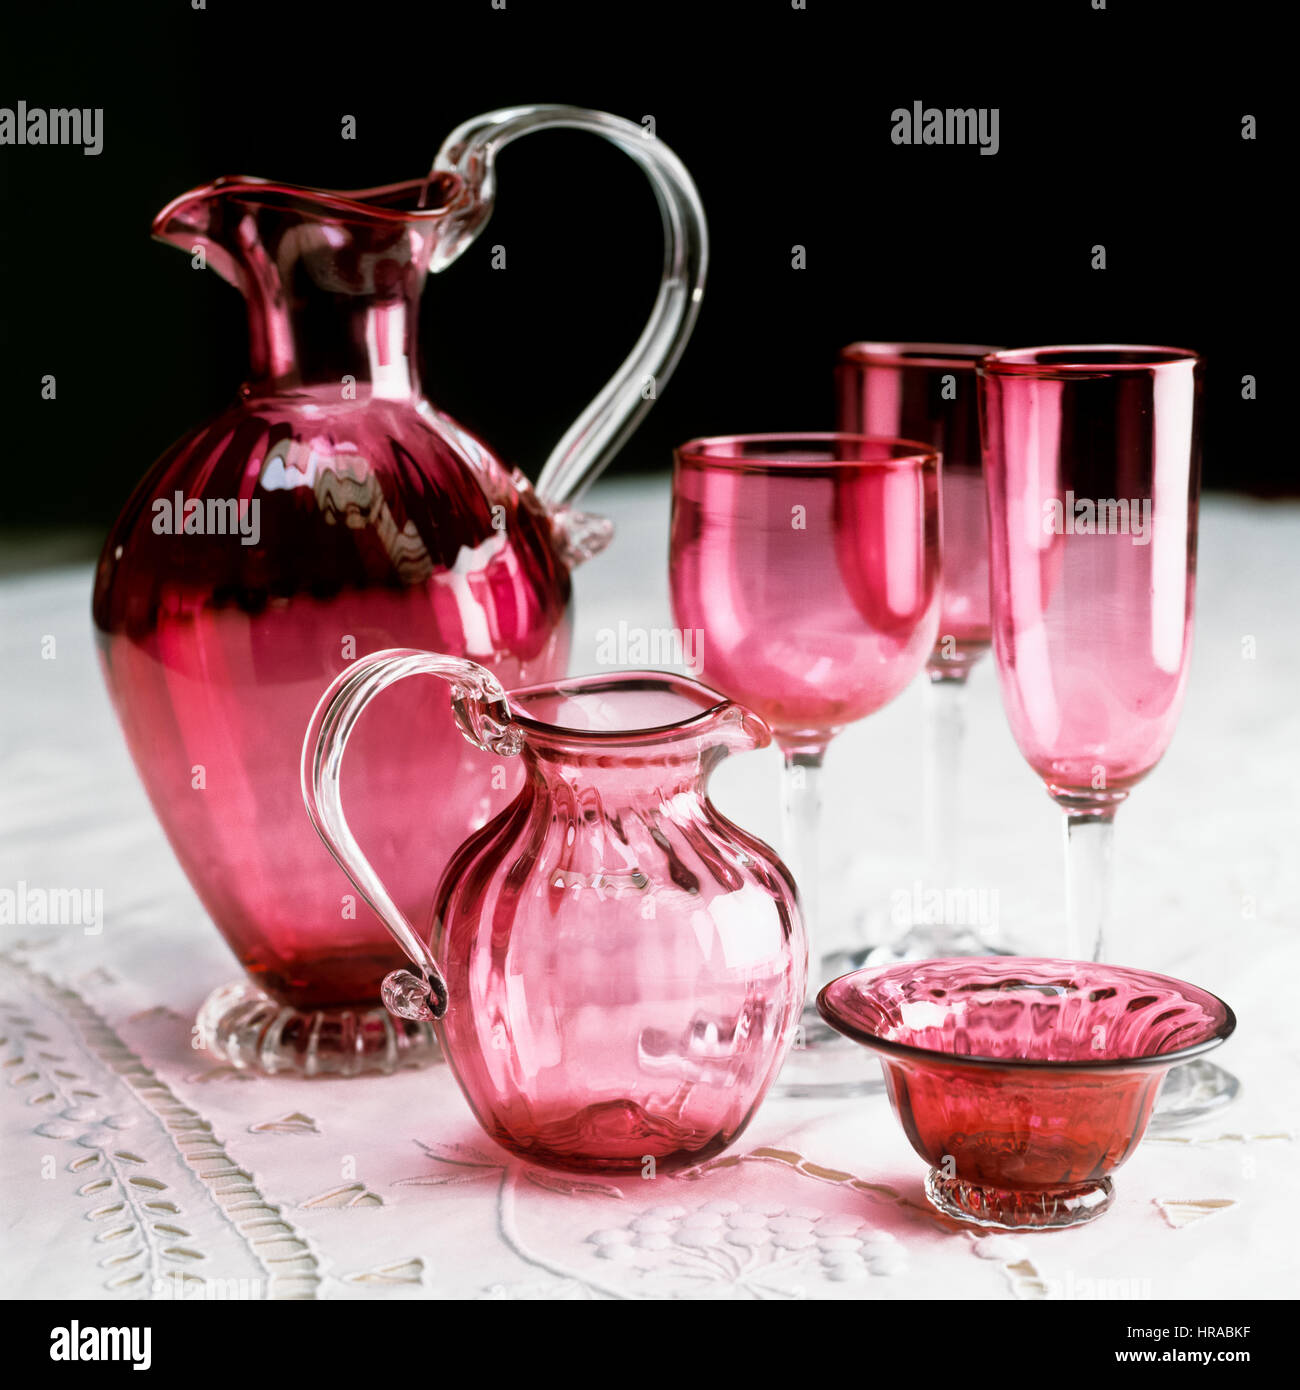 Red glassware. - Stock Image